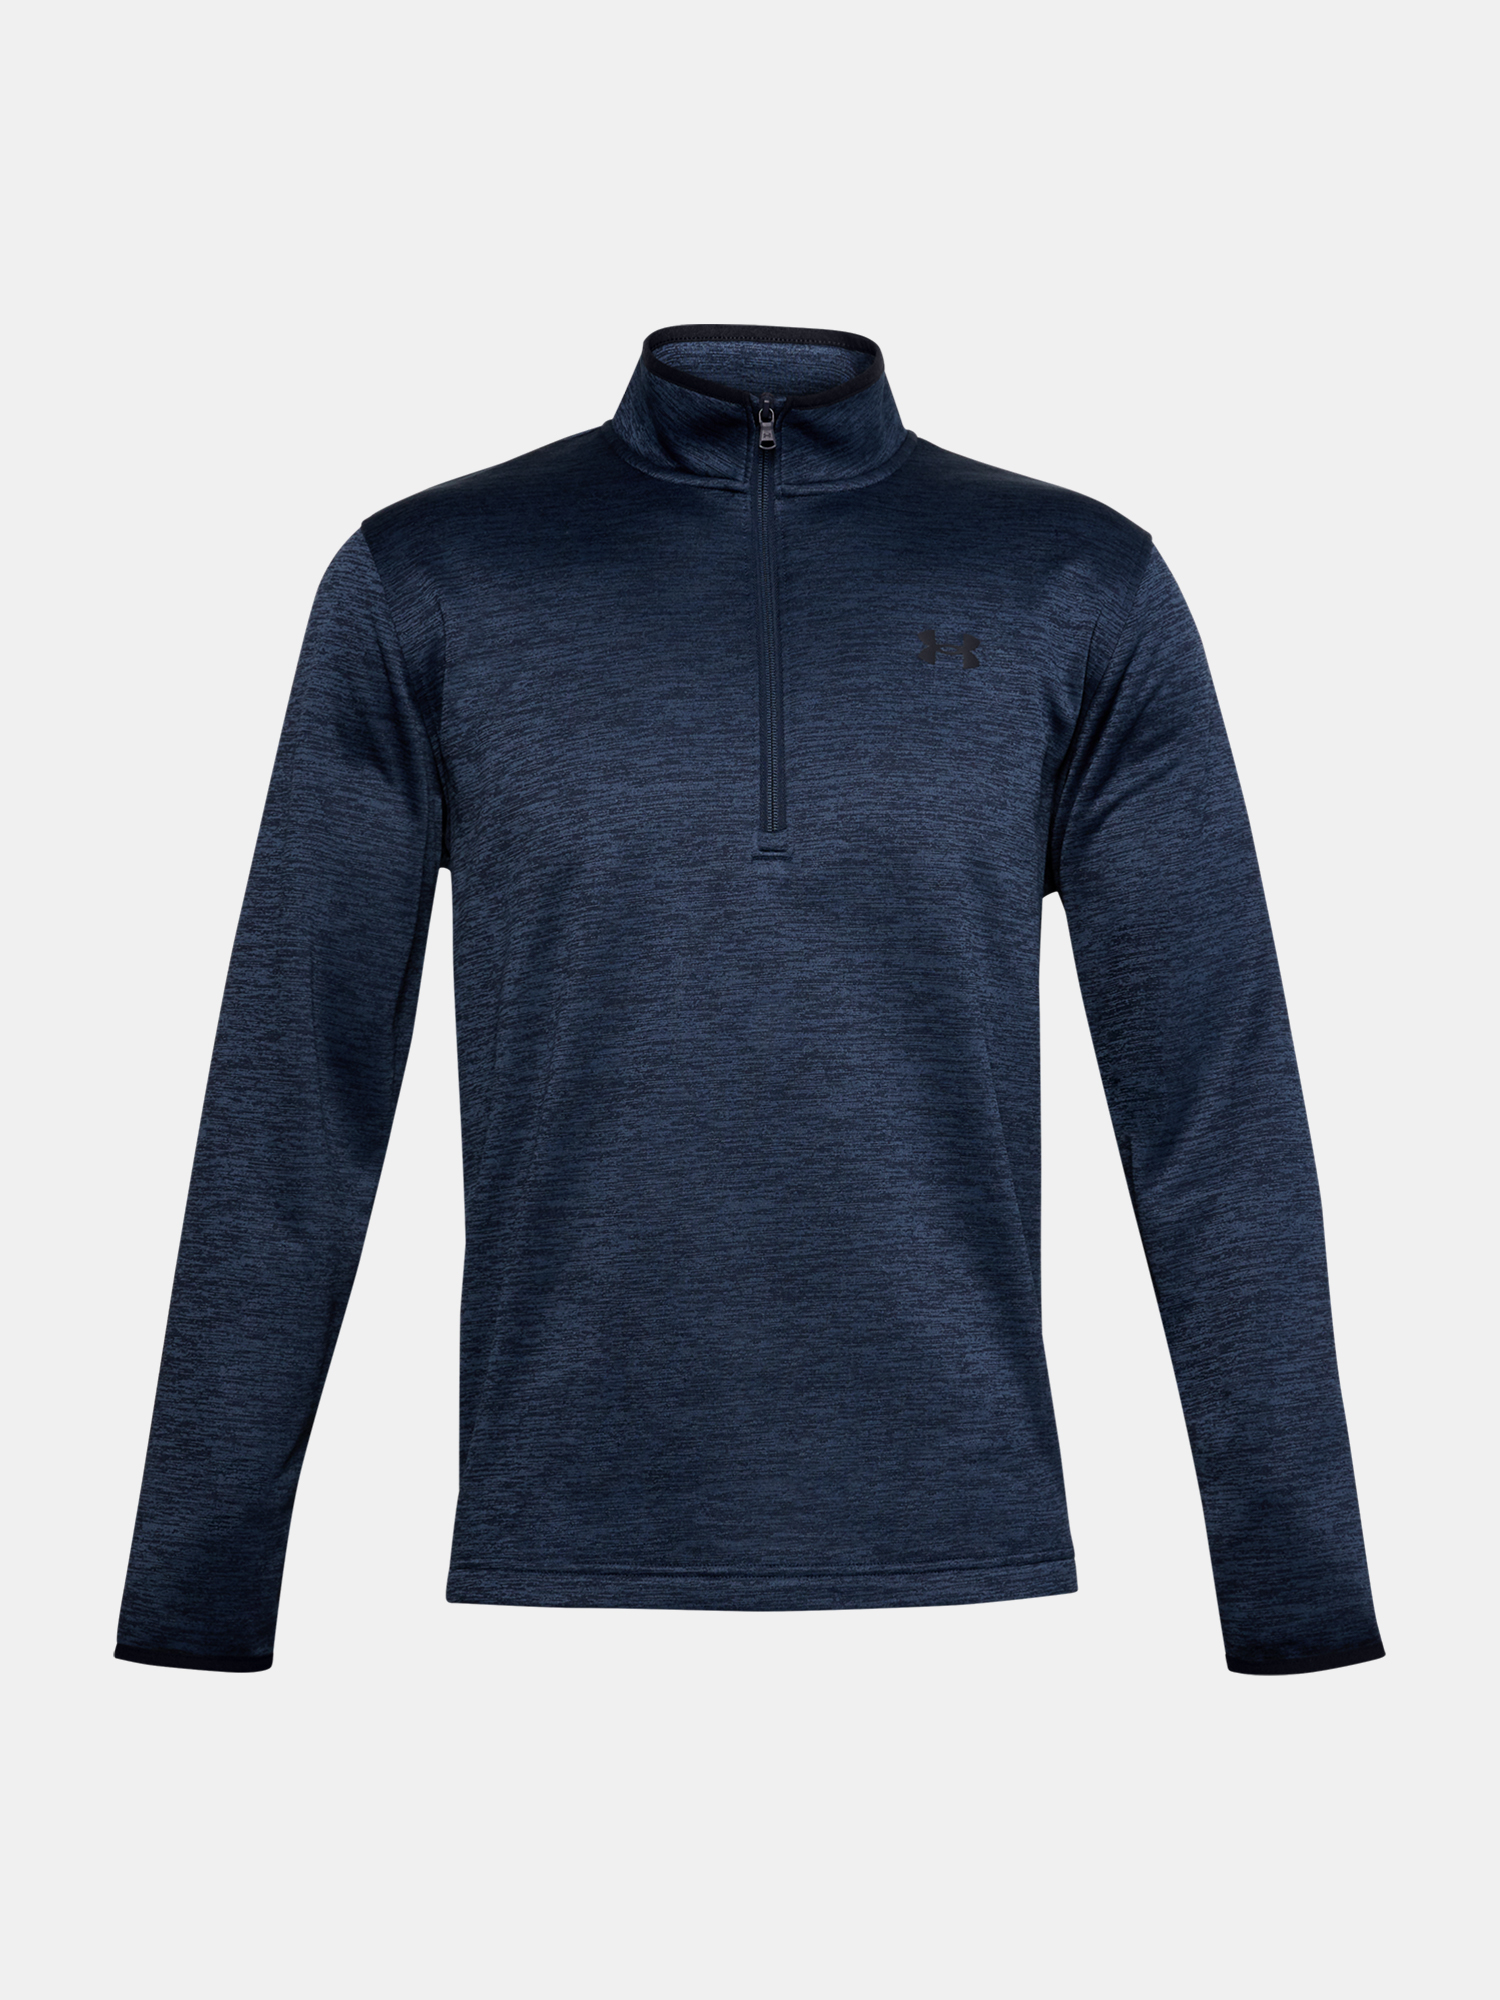 Mikina Under Armour Armour Fleece 1/2 ZIP-NVY (3)